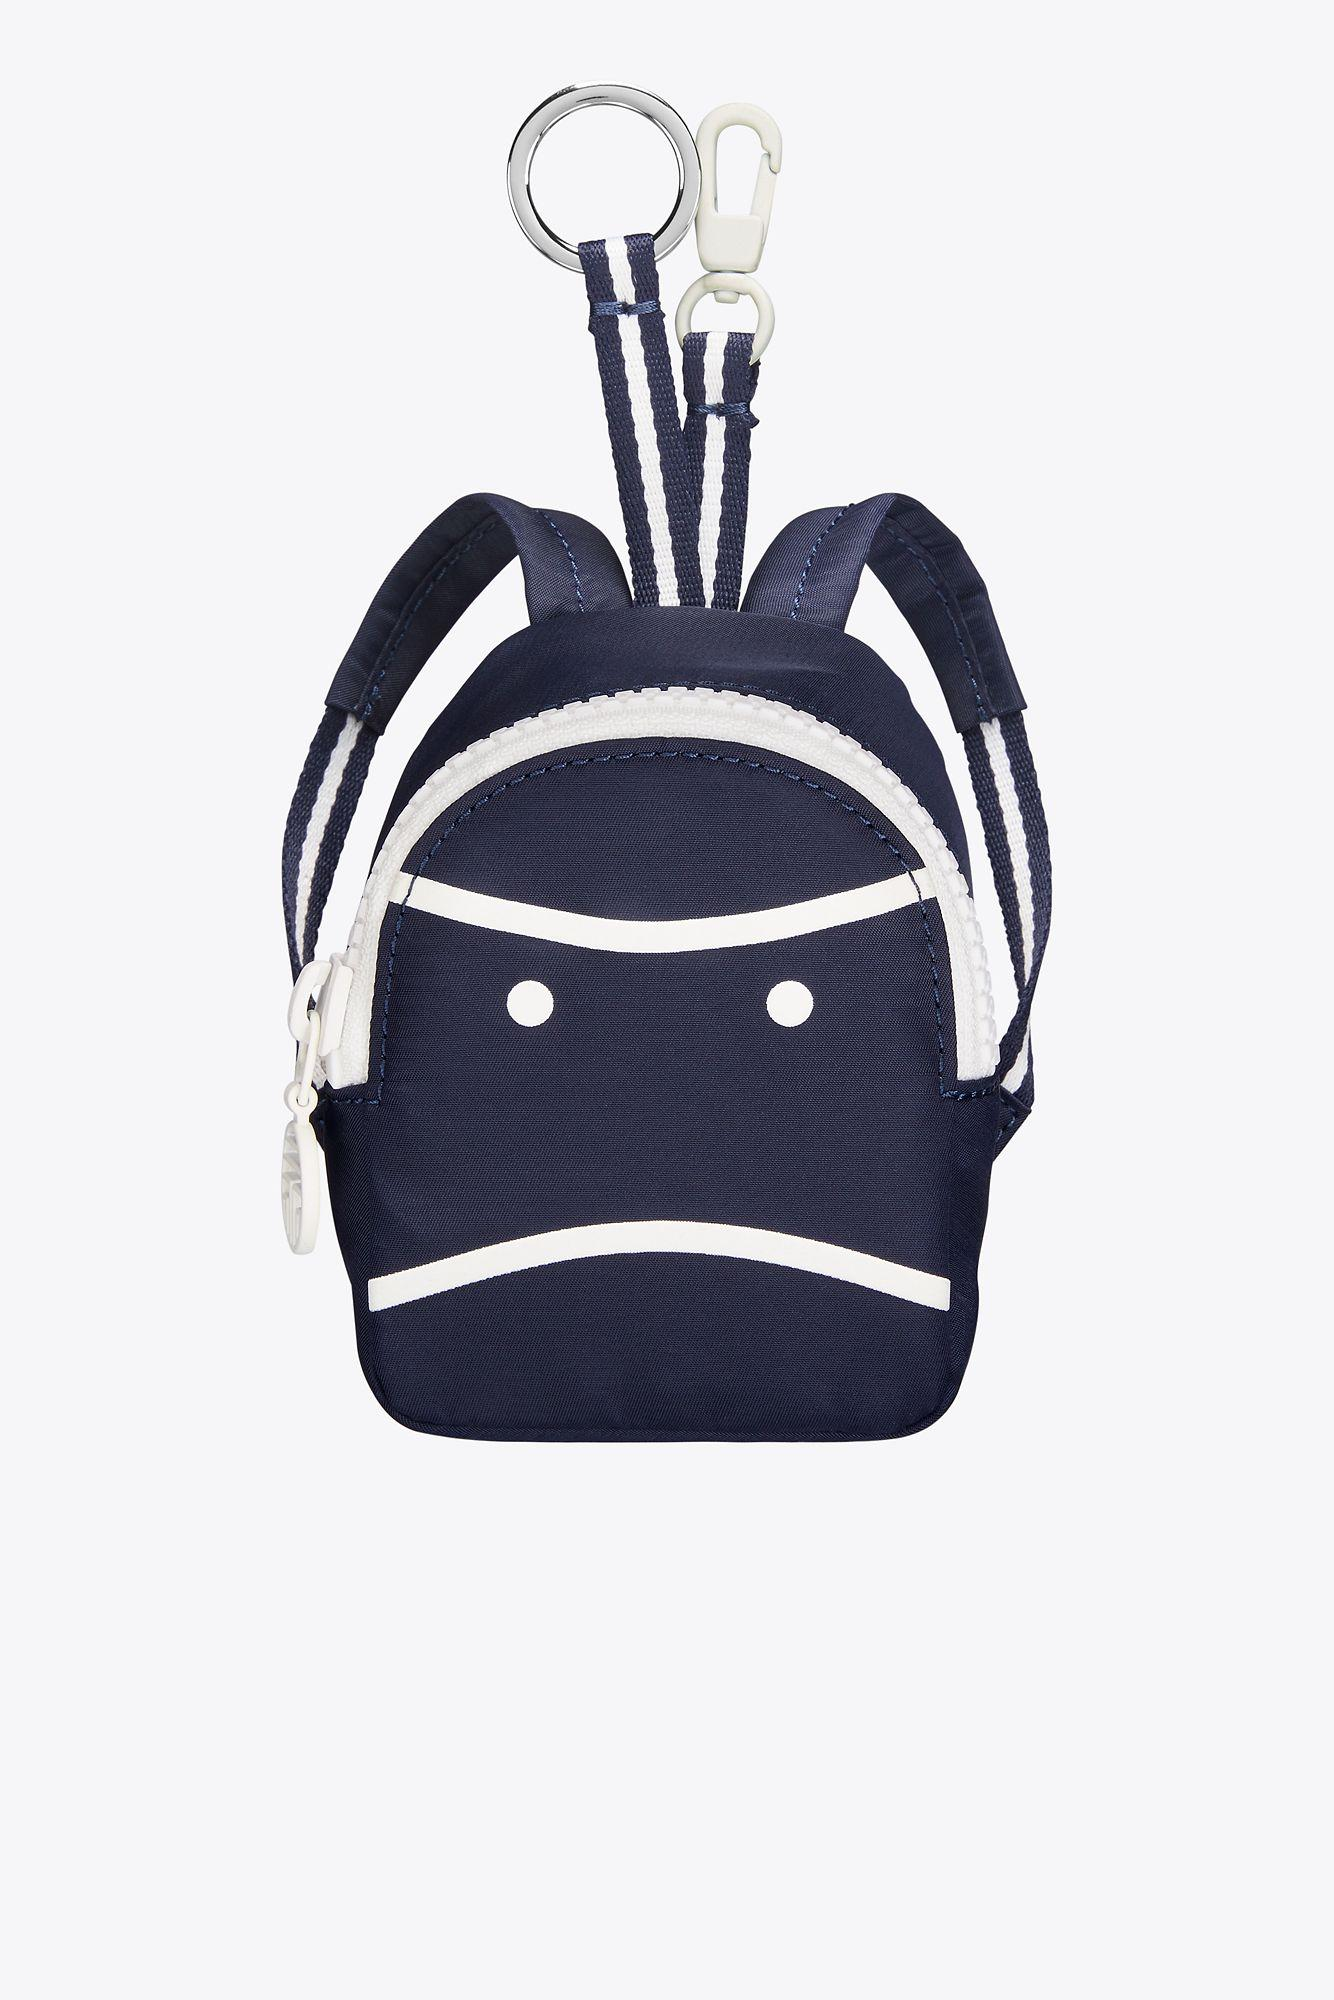 4c88f5c982a0 Lyst - Tory Sport Tory Burch Little Grumps Mini Backpack Key Fob in Blue